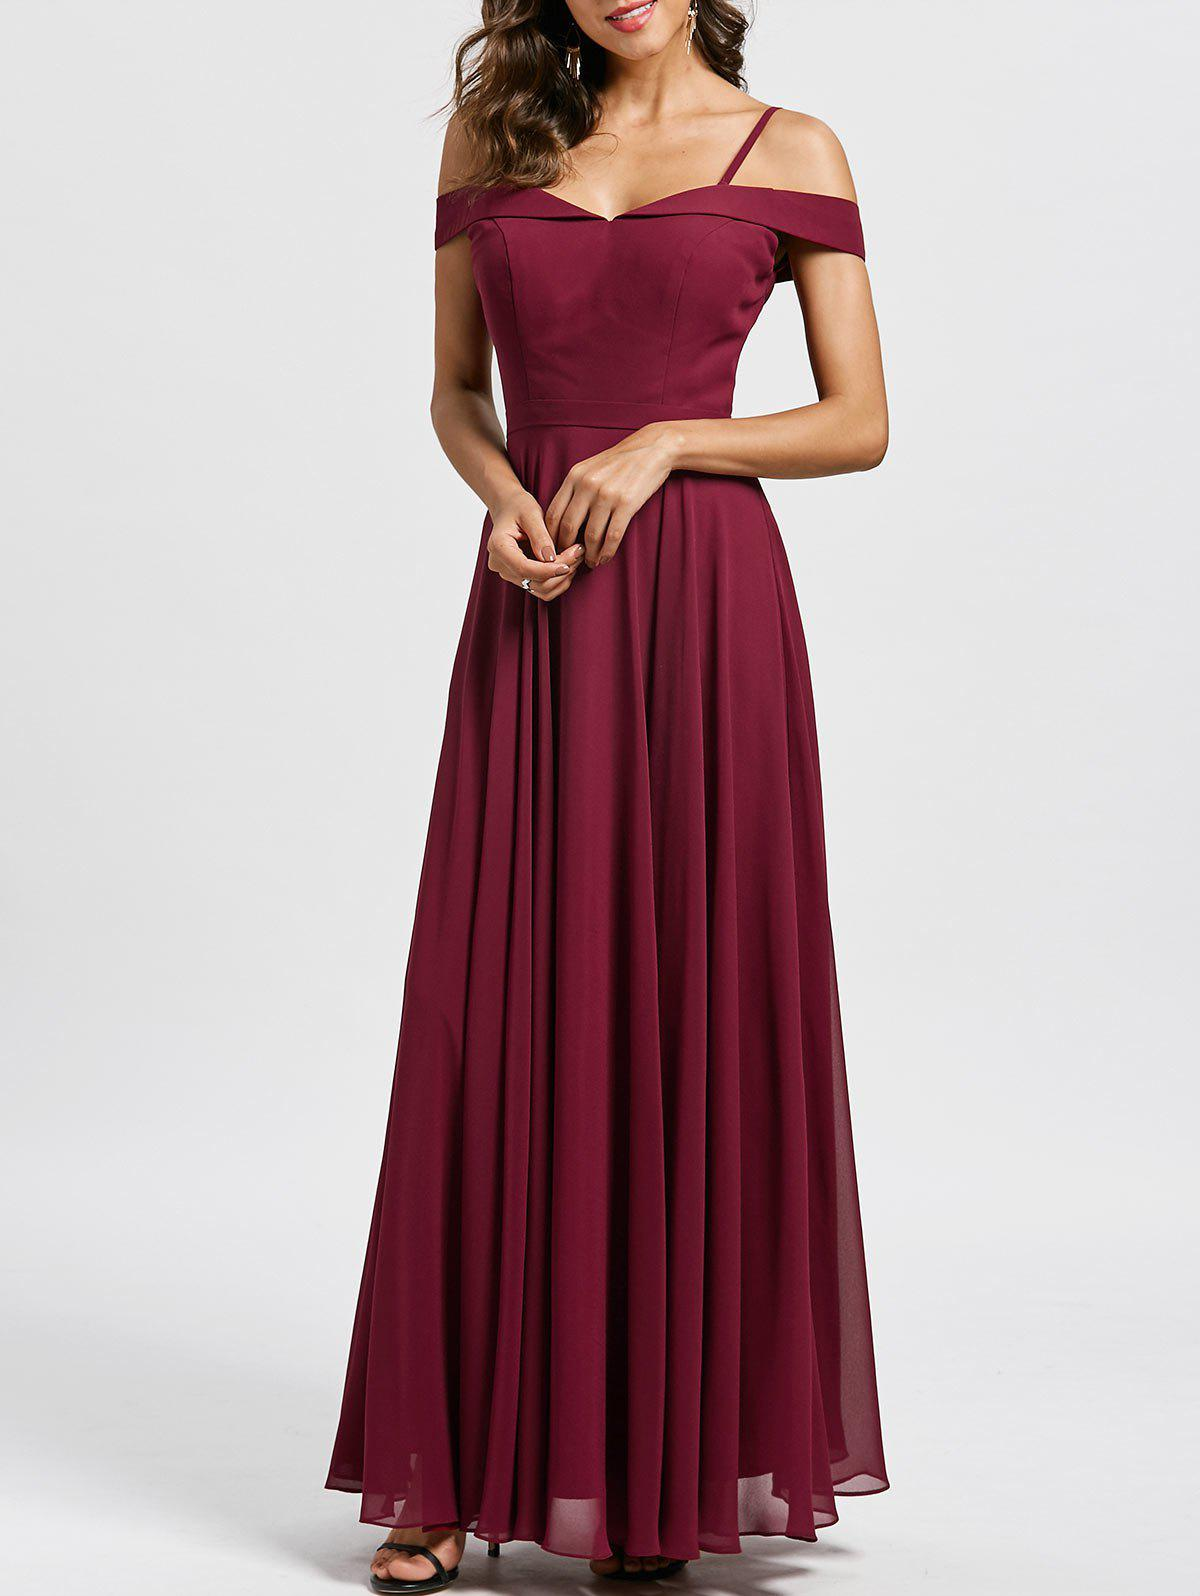 2018 Spaghetti Strap Cold Shoulder Formal Evening Dress In Wine Red ...